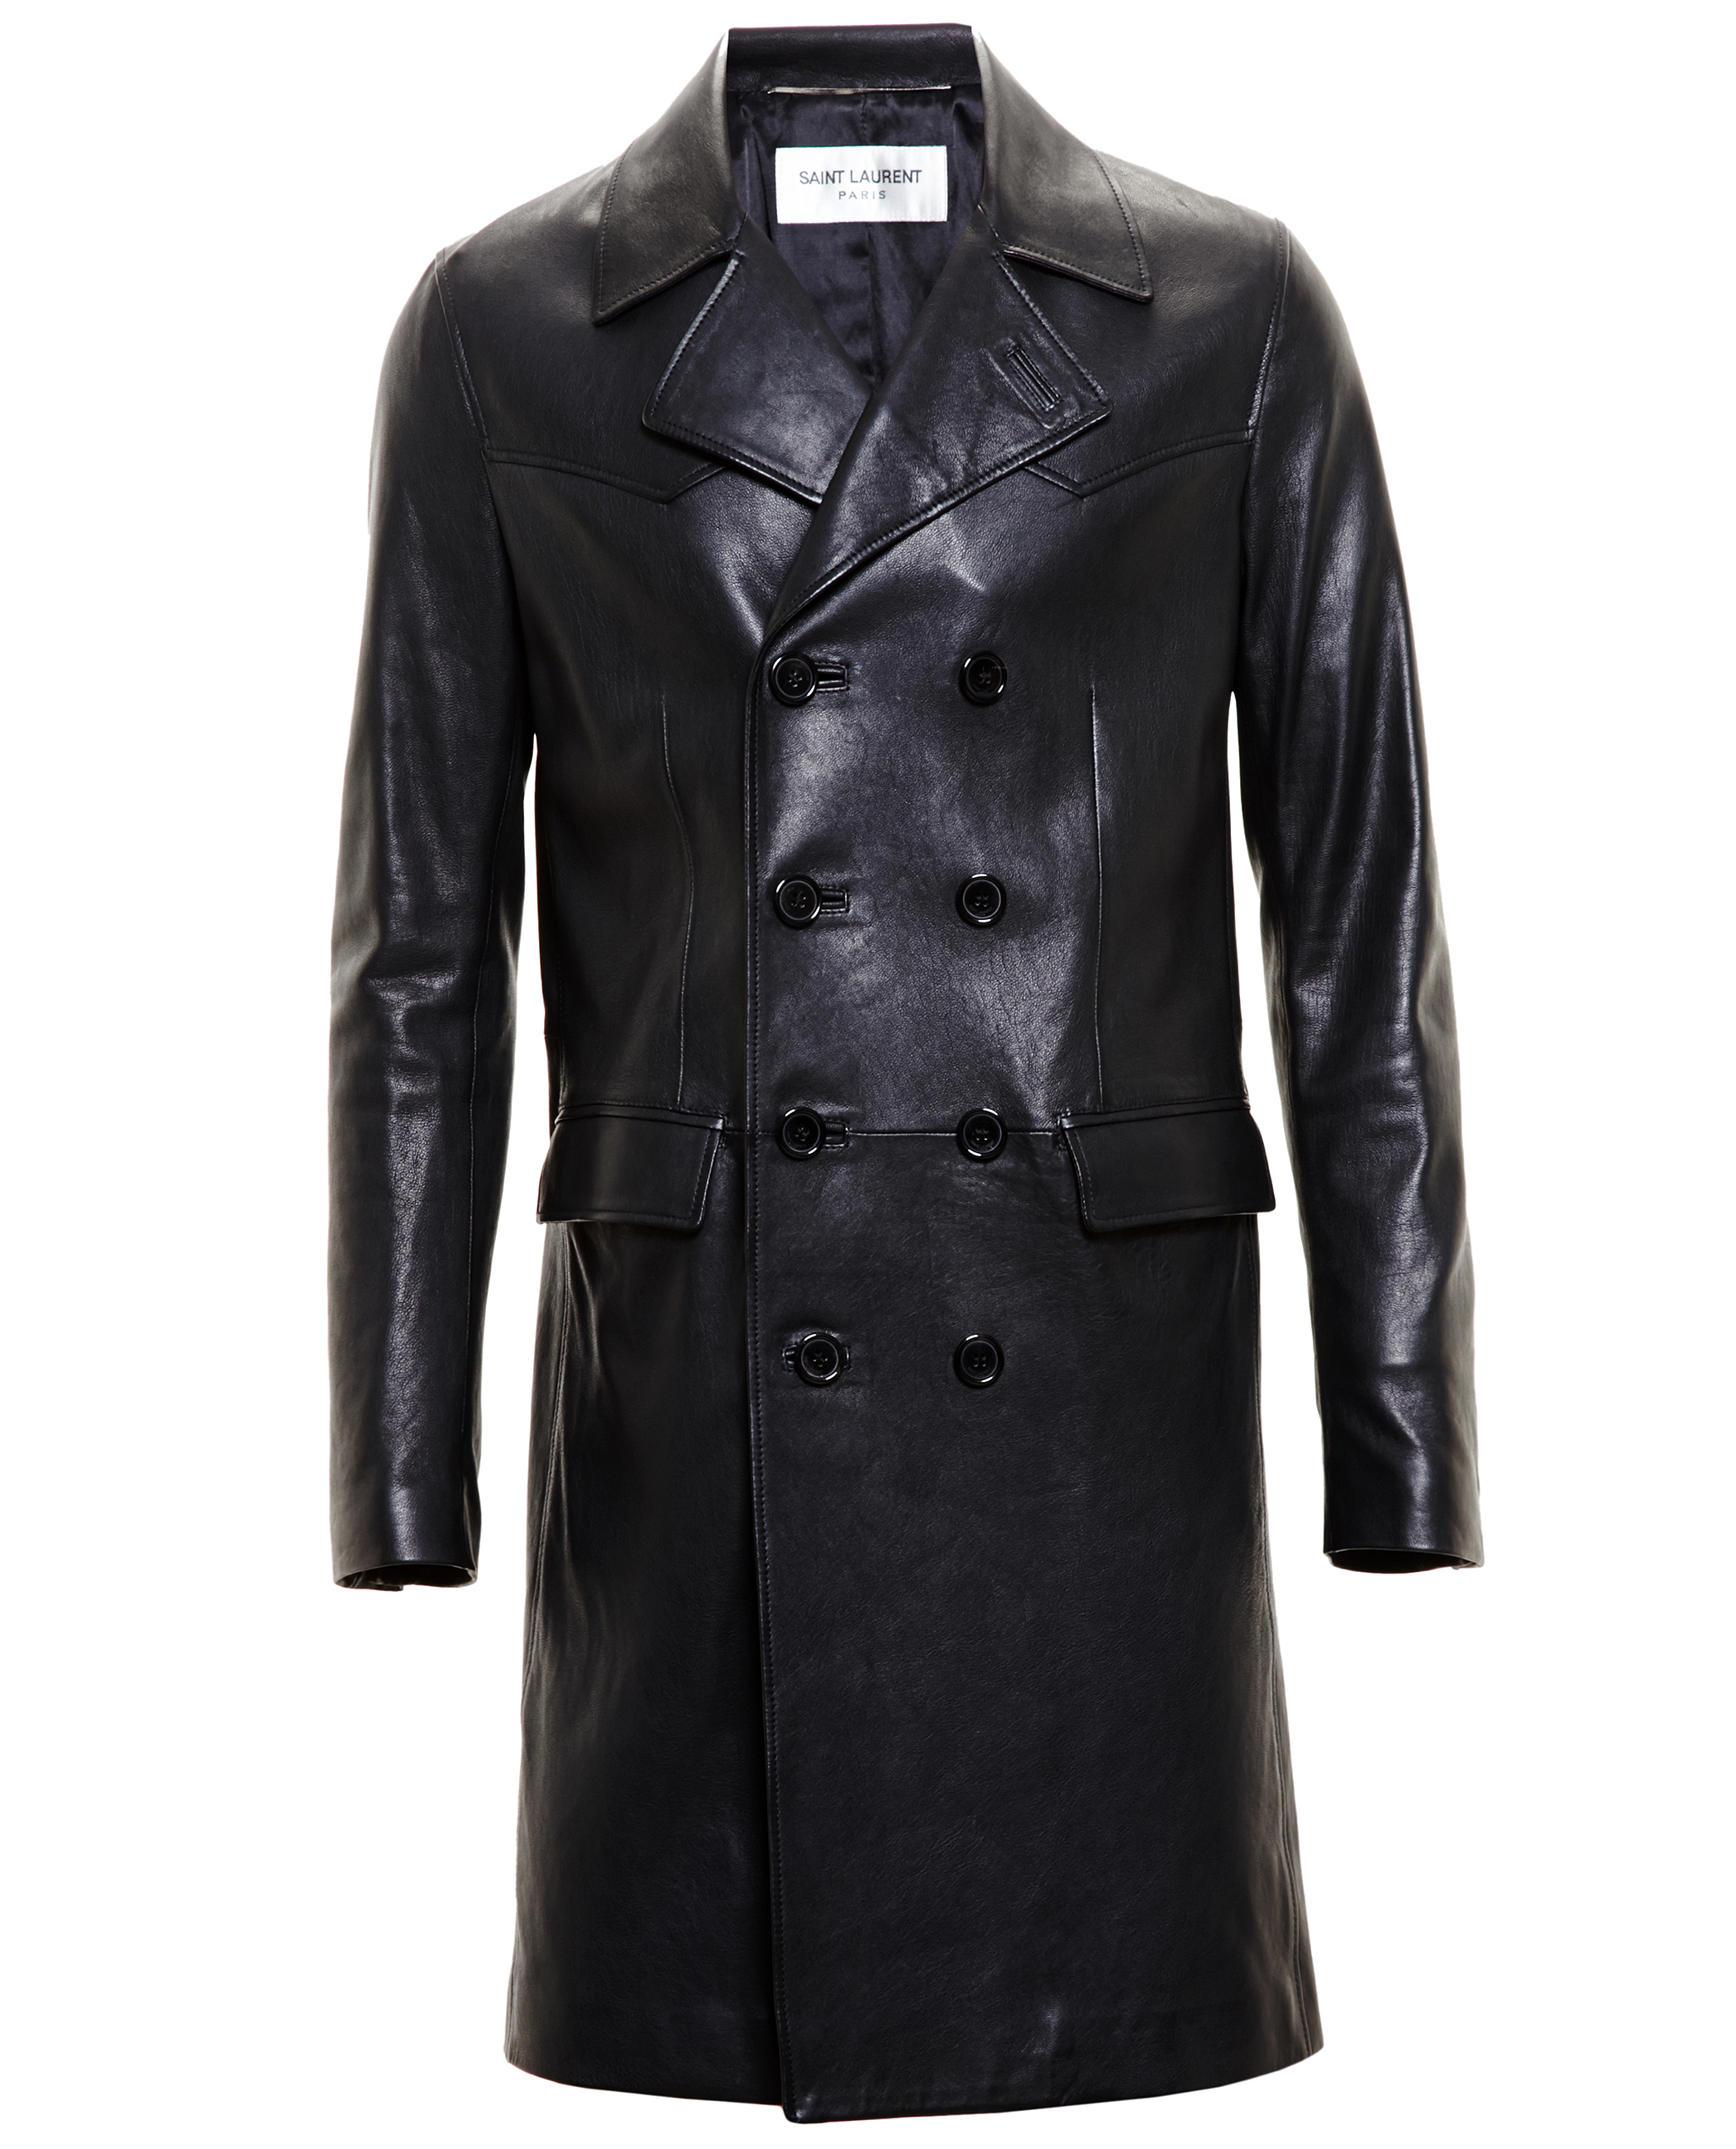 Saint laurent Leather Trench Coat in Black | Lyst